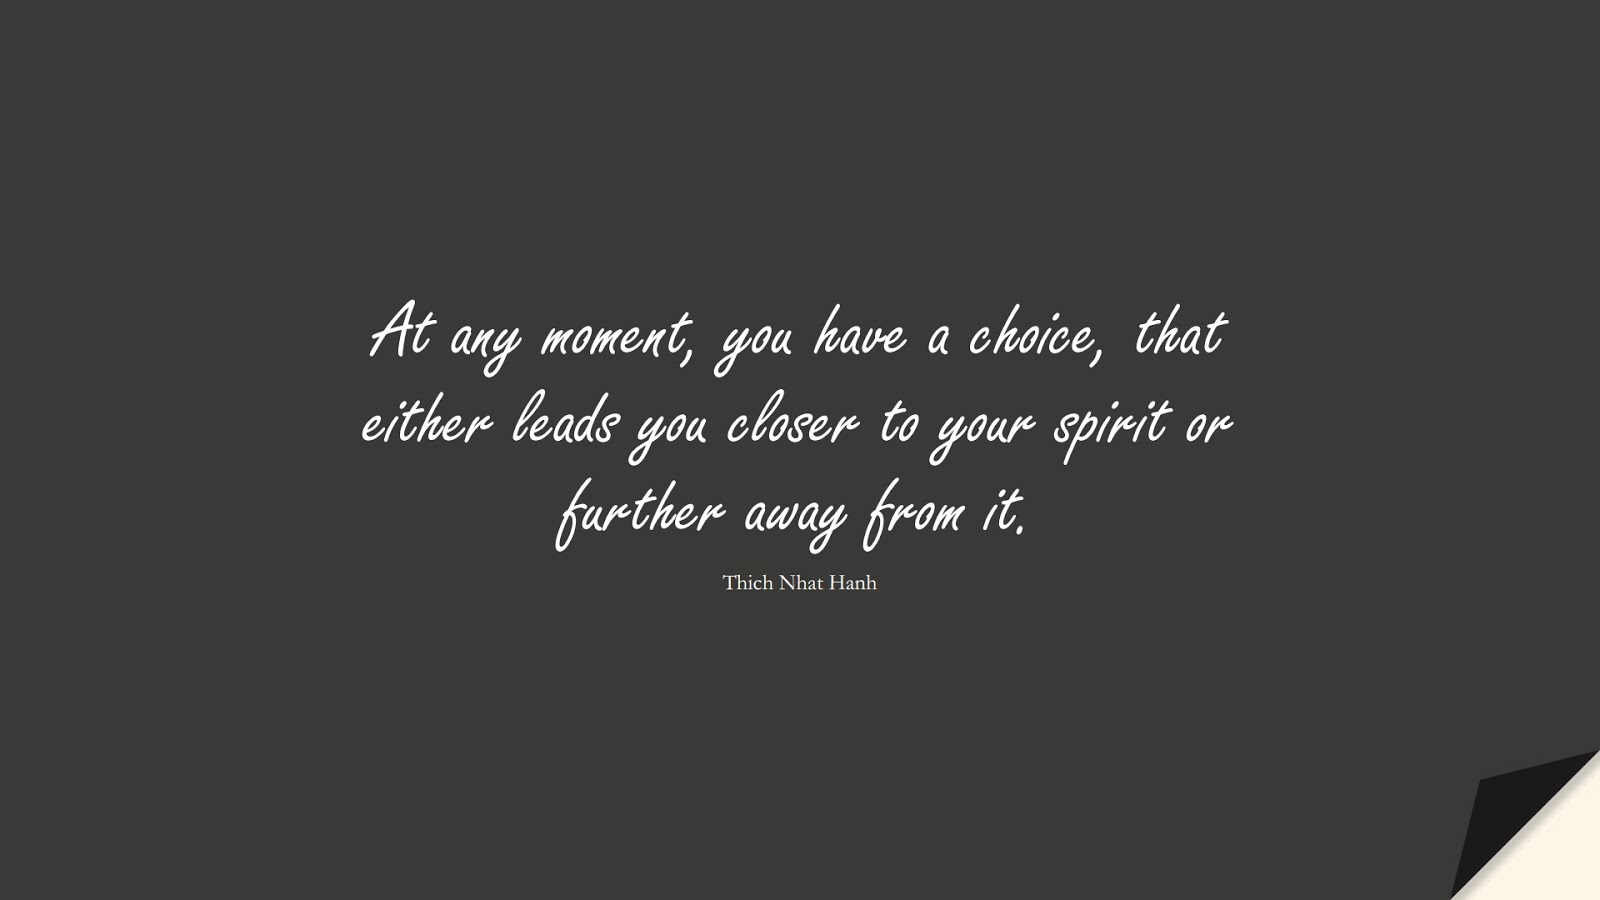 At any moment, you have a choice, that either leads you closer to your spirit or further away from it. (Thich Nhat Hanh);  #CalmQuotes